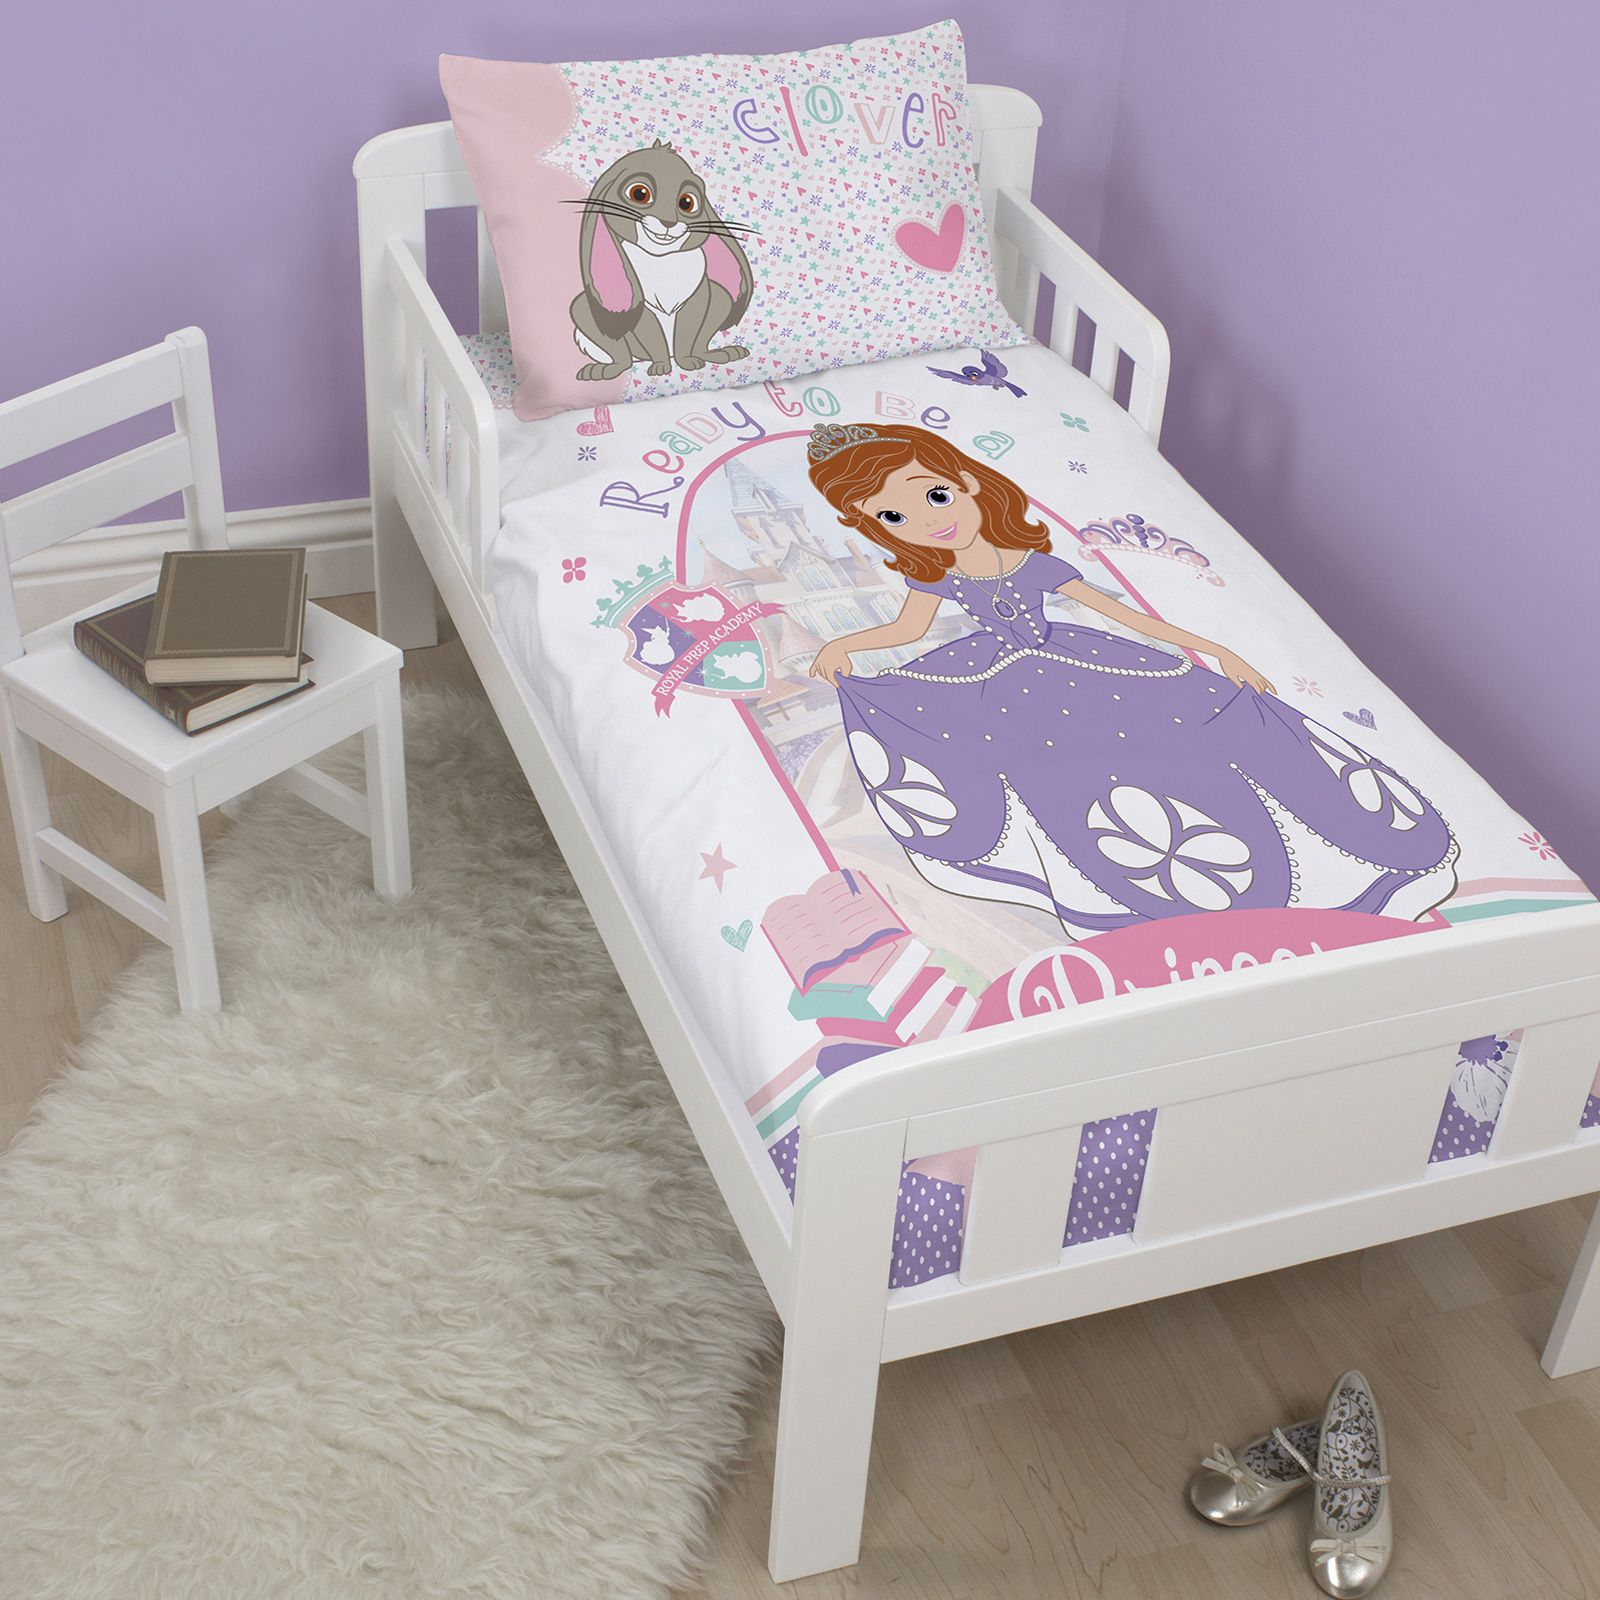 disney sofia die erste kinderbett bettbezug set neu bettw sche ebay. Black Bedroom Furniture Sets. Home Design Ideas